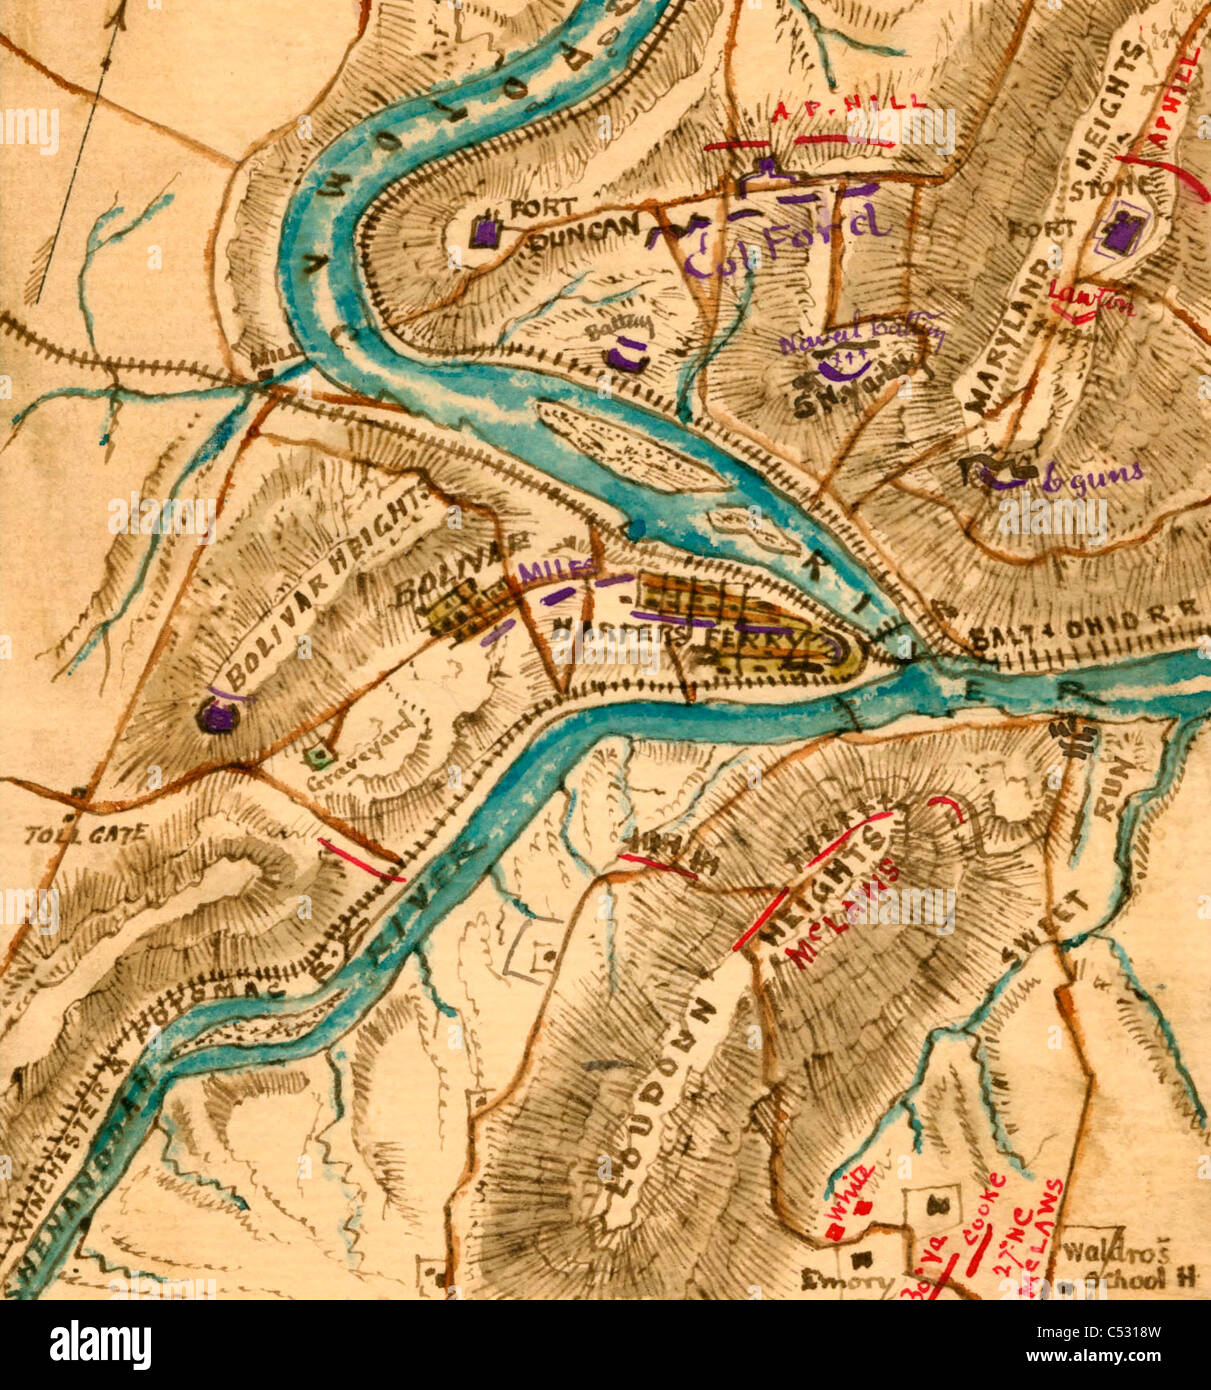 Harpers Ferry Virginia Map.Map Of Harper S Ferry Virginia With Troop Positions During The Usa